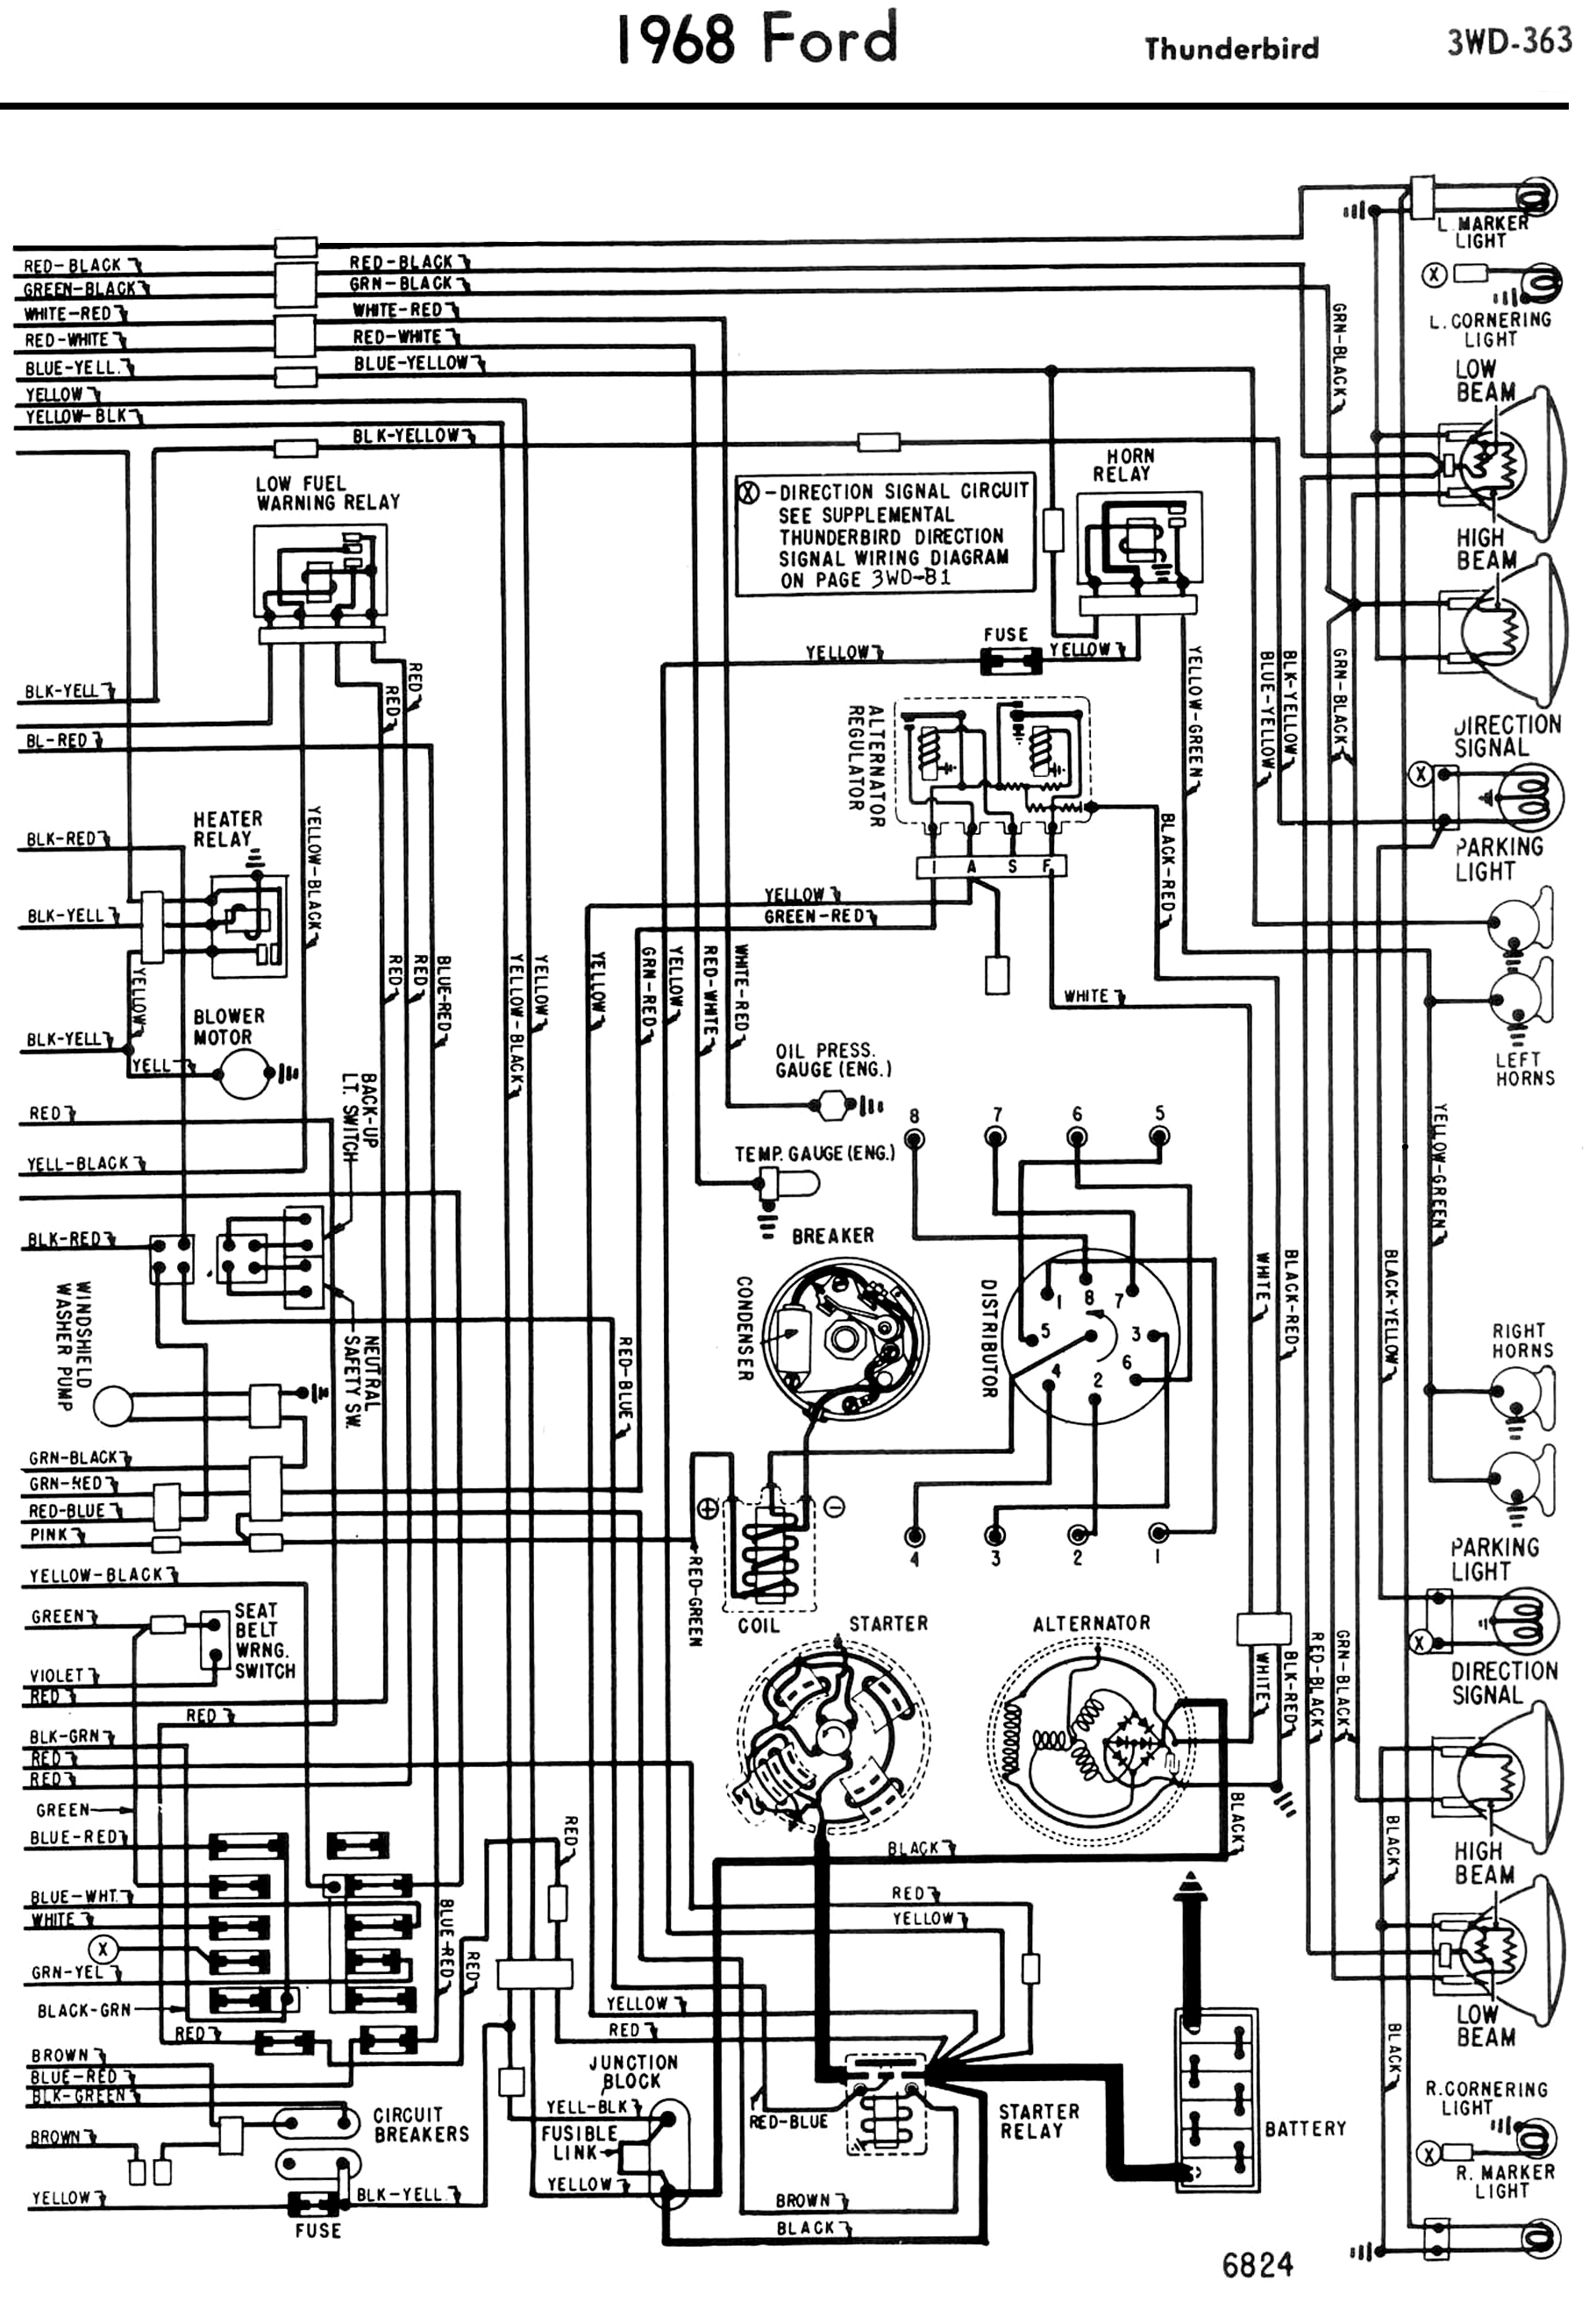 1965 Ford Thunderbird Turn Signal Wiring Diagram 1965